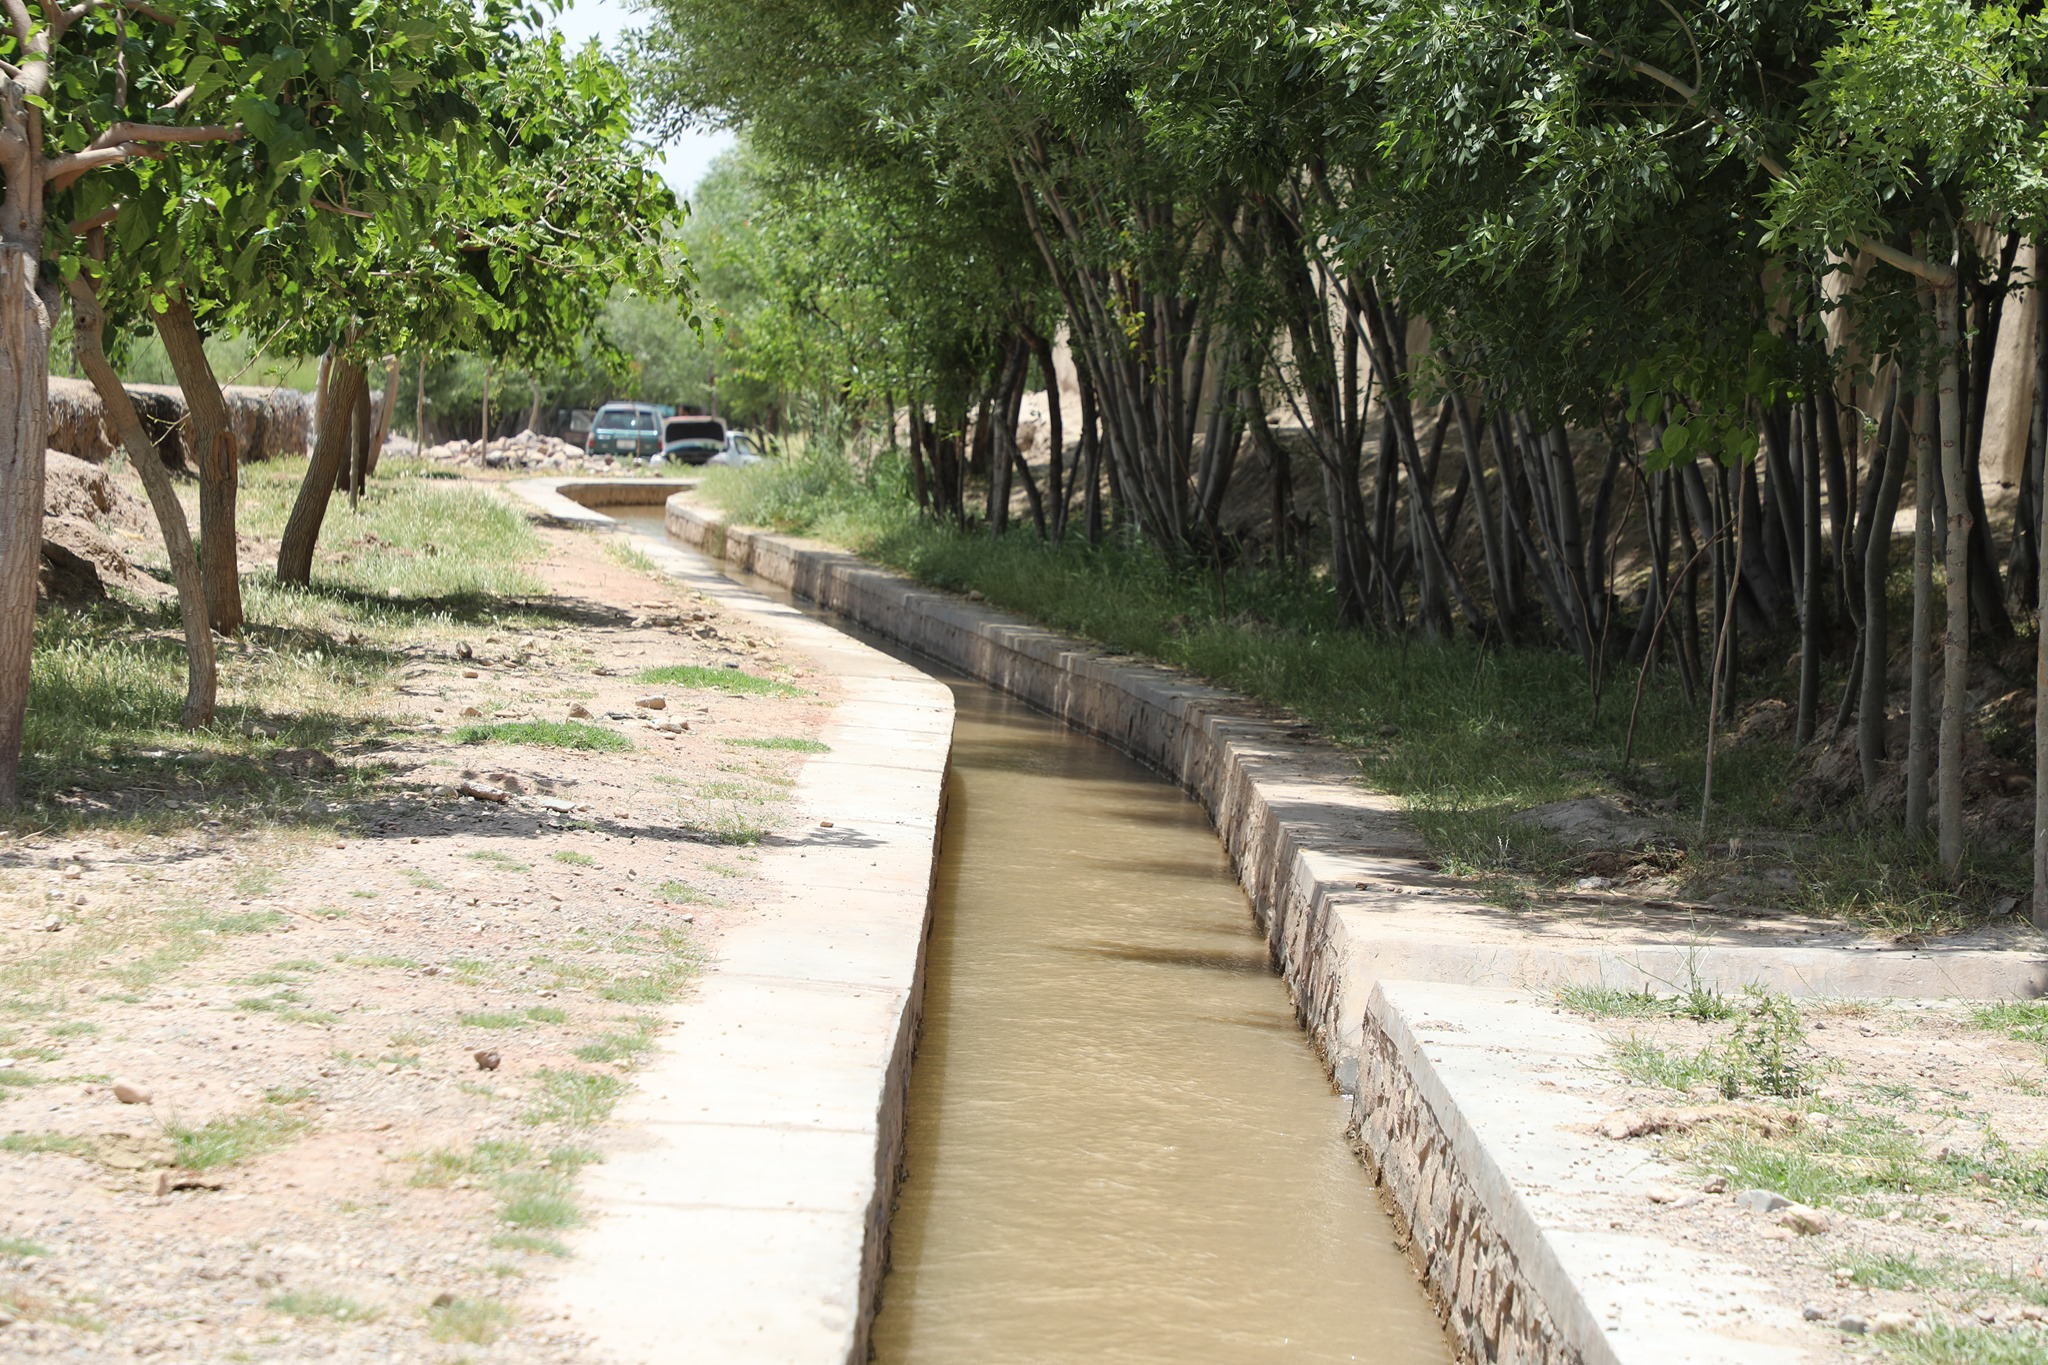 Irrigation networks built in Herat, These networks have been built by Second National Priority Program 2 (SNapp2) in different districts of the province.